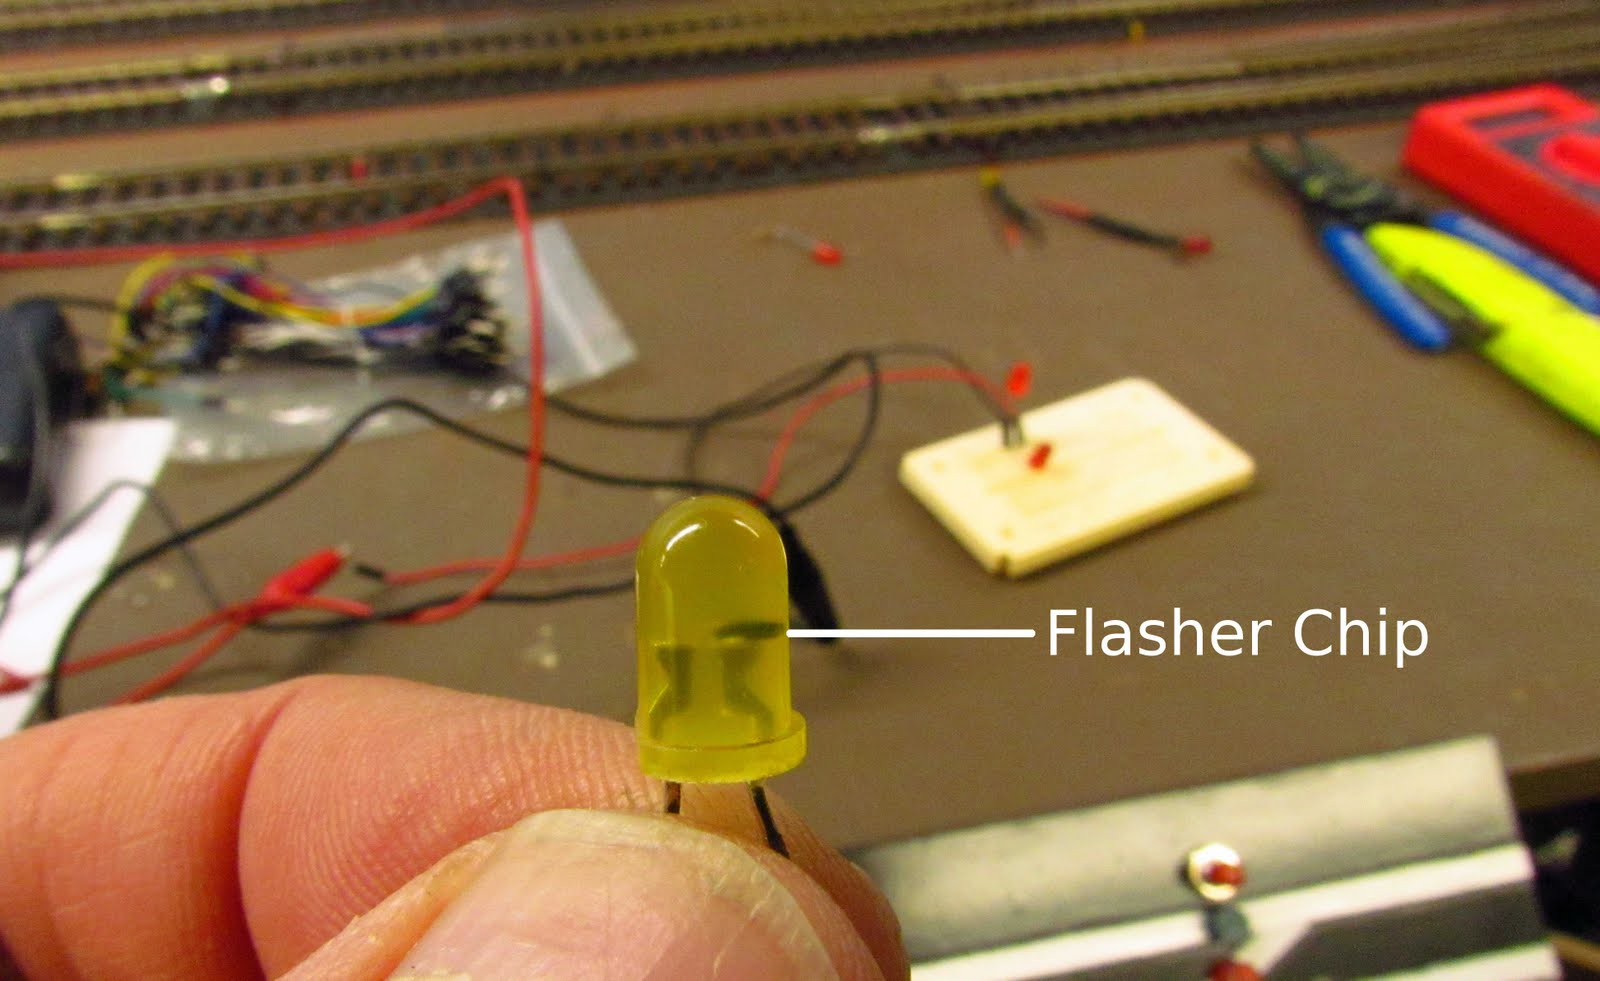 2 Rail O Scale Railroading Using Specialty Leds Part 1 Picture Of Choosing The Resistor To Use With Most Flashing Is Simplicity Itself Simply Hook Led Up 3v Dc Observing Proper Polarity And They Begin No